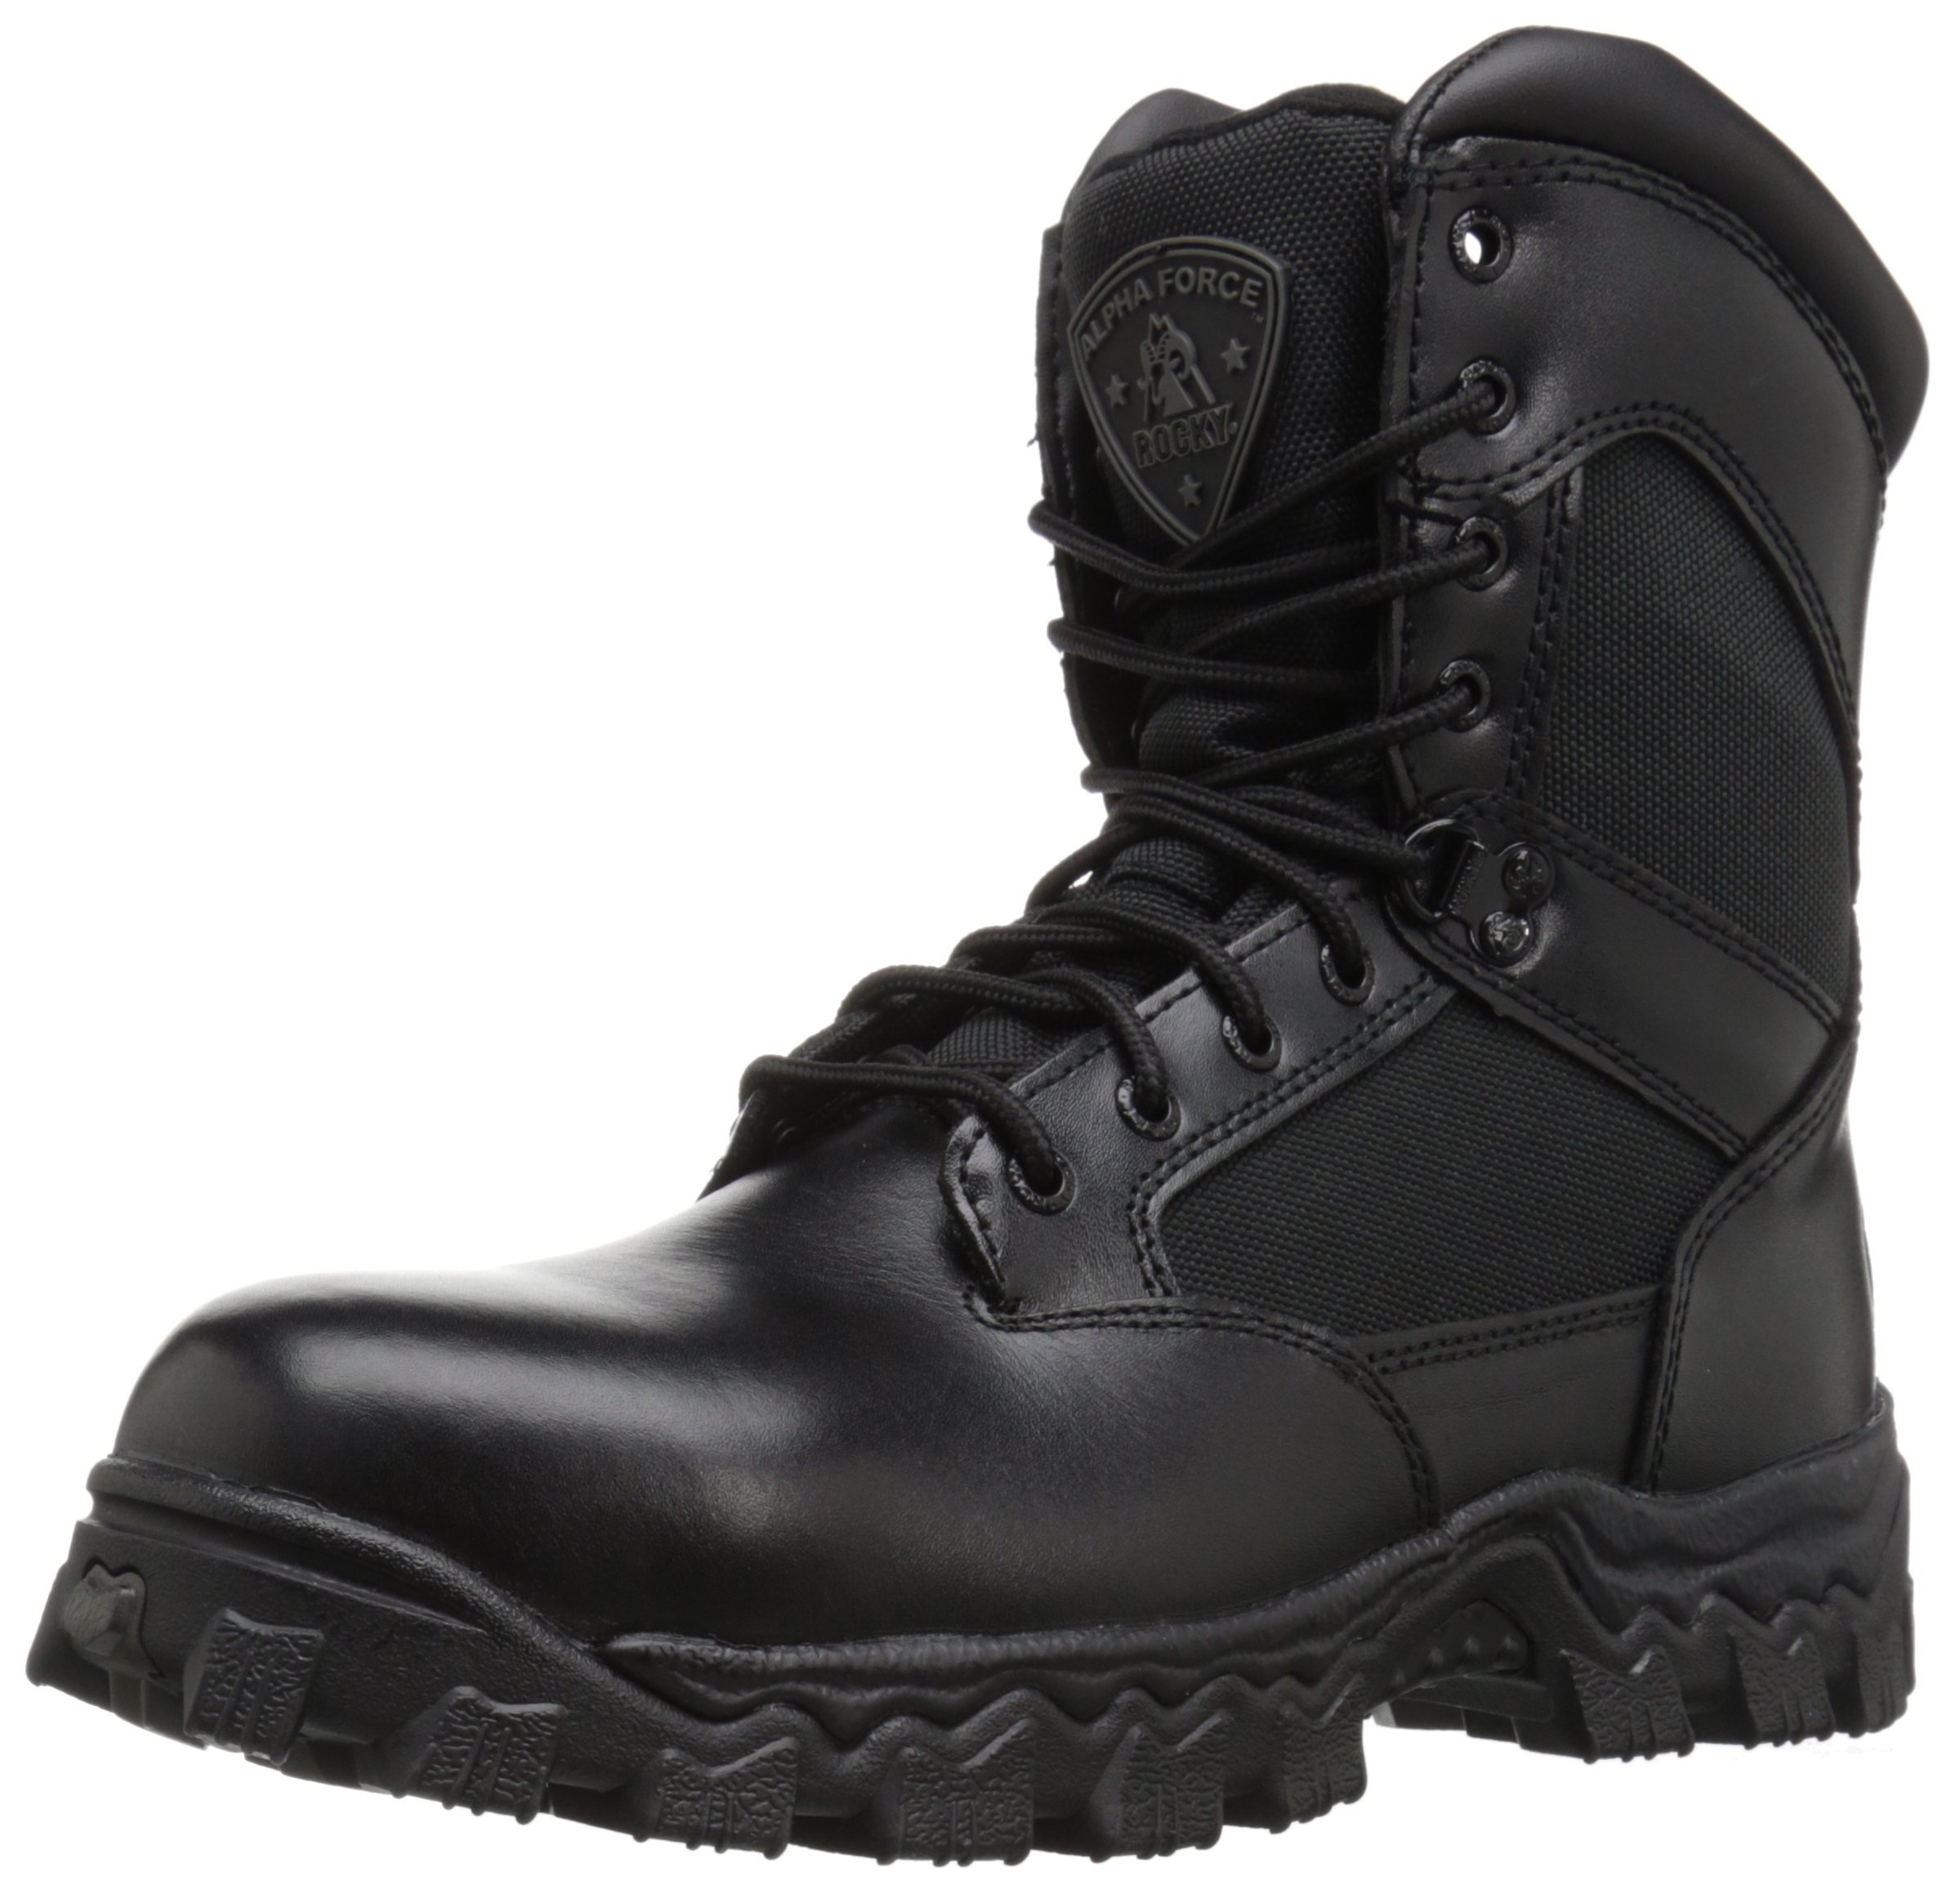 Rocky Men's Alpha Force 8 Inch Side Zip Steel Toe Work Boot,Black,9.5 M US